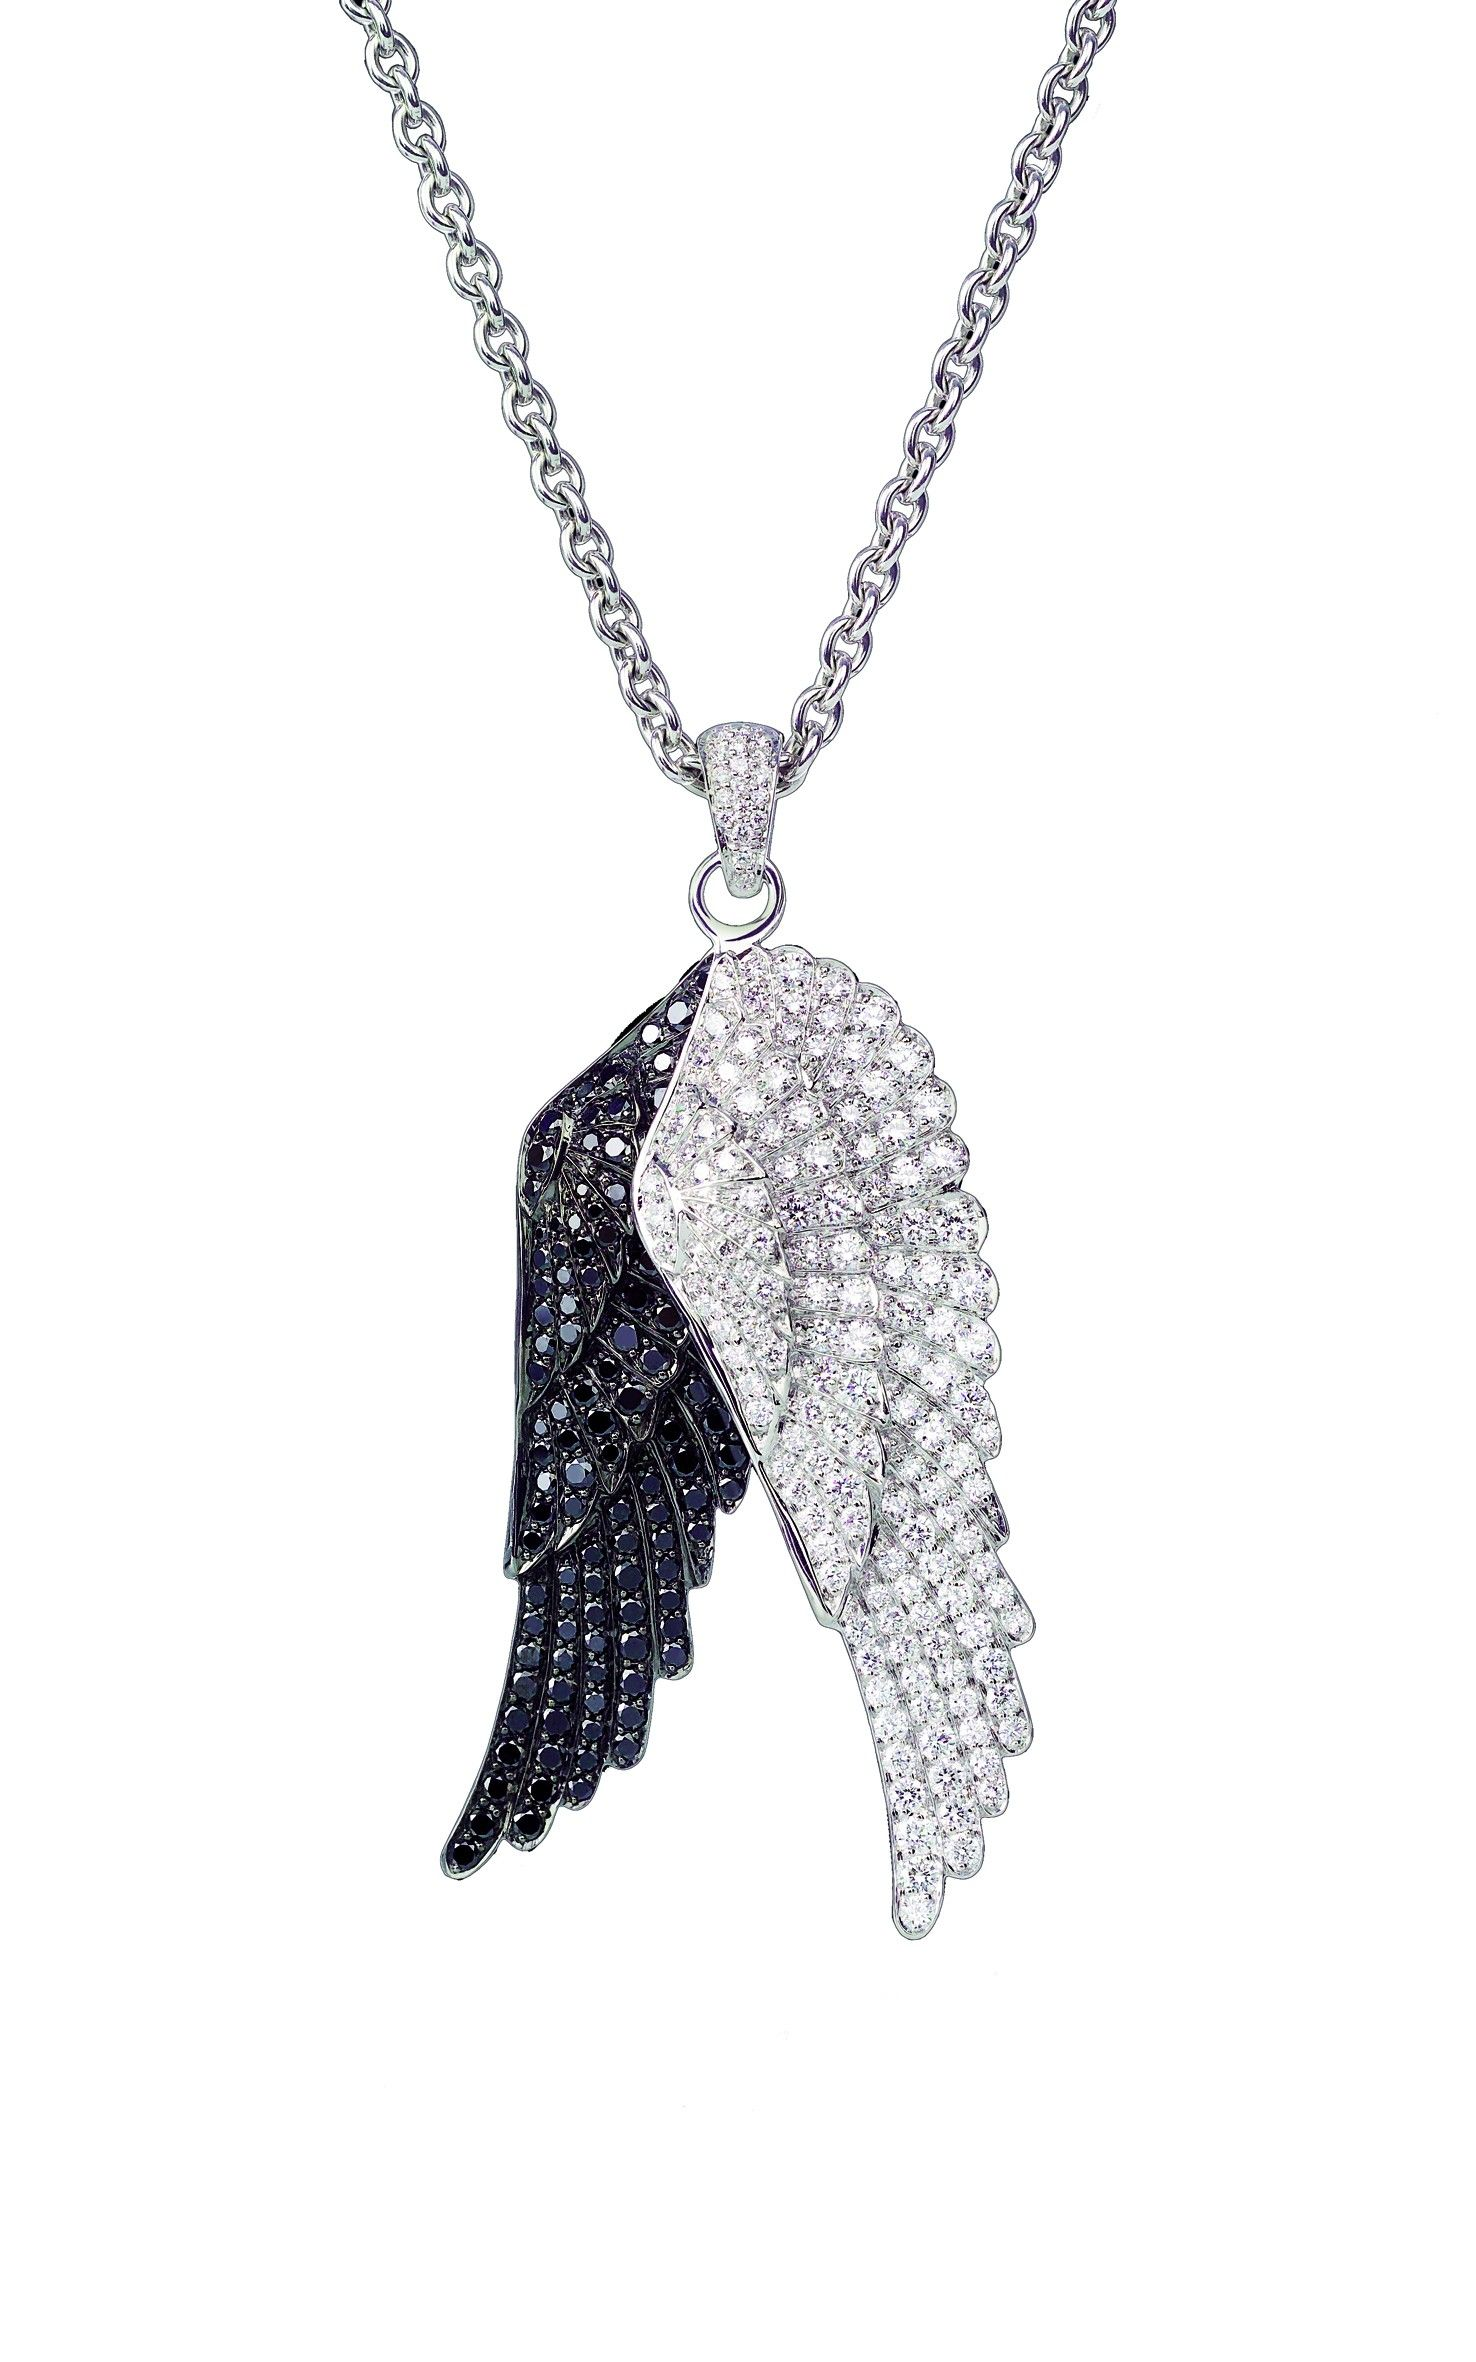 Wings double pendant with white and black diamonds created in